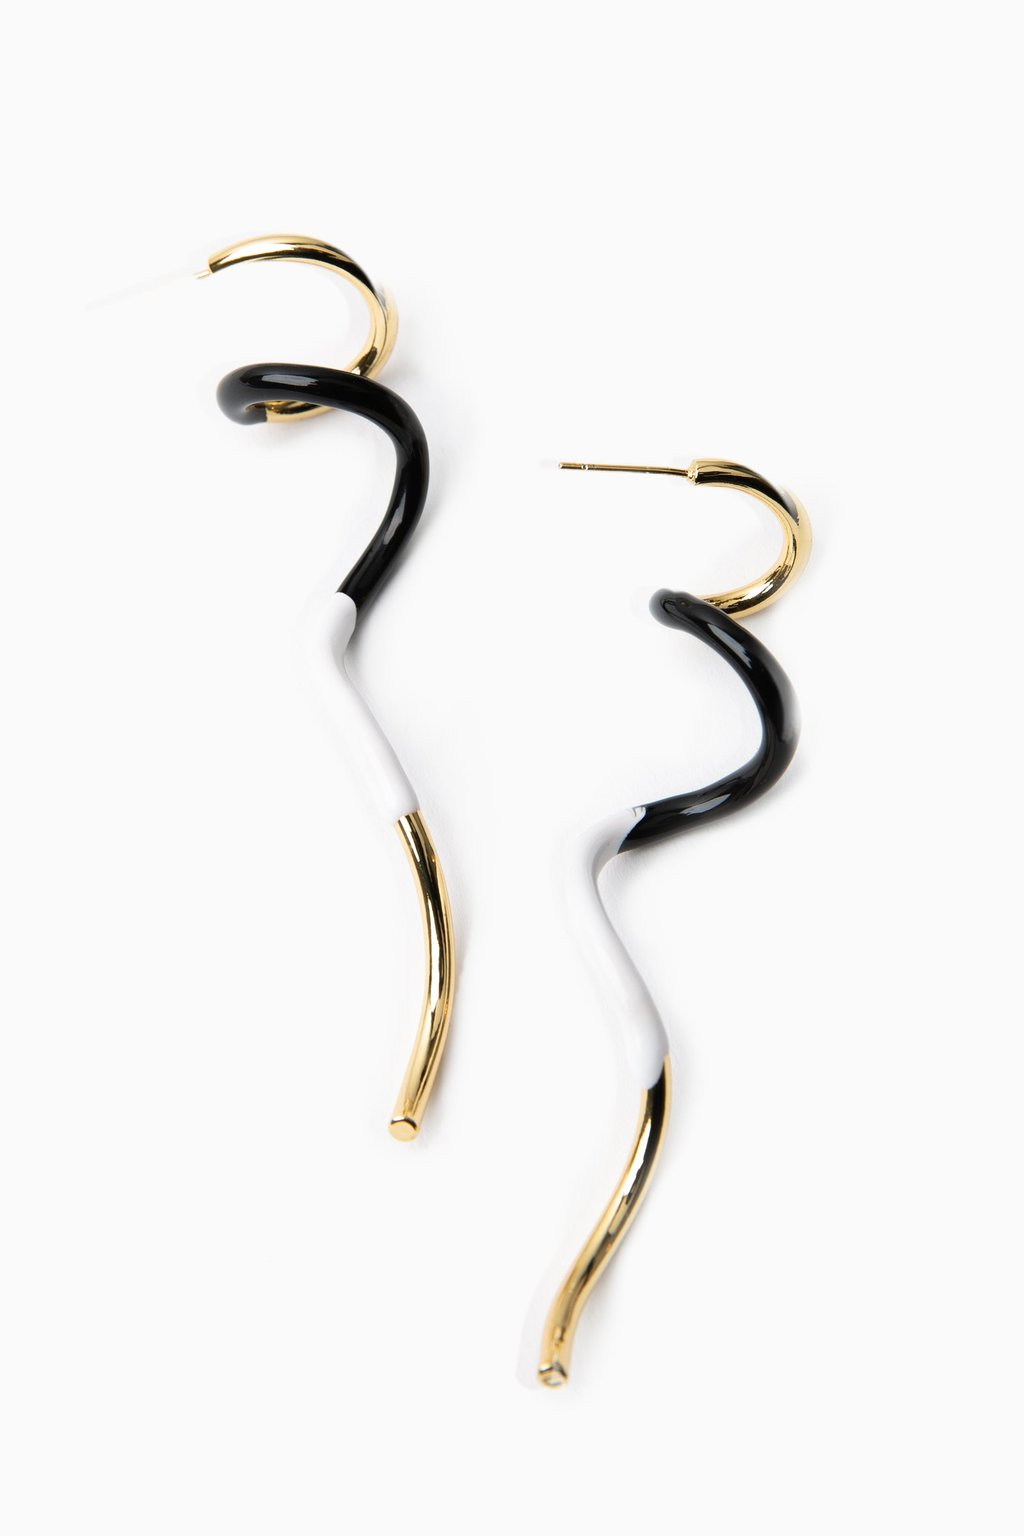 Kensington Earrings by J.ING women's clothing and accessories